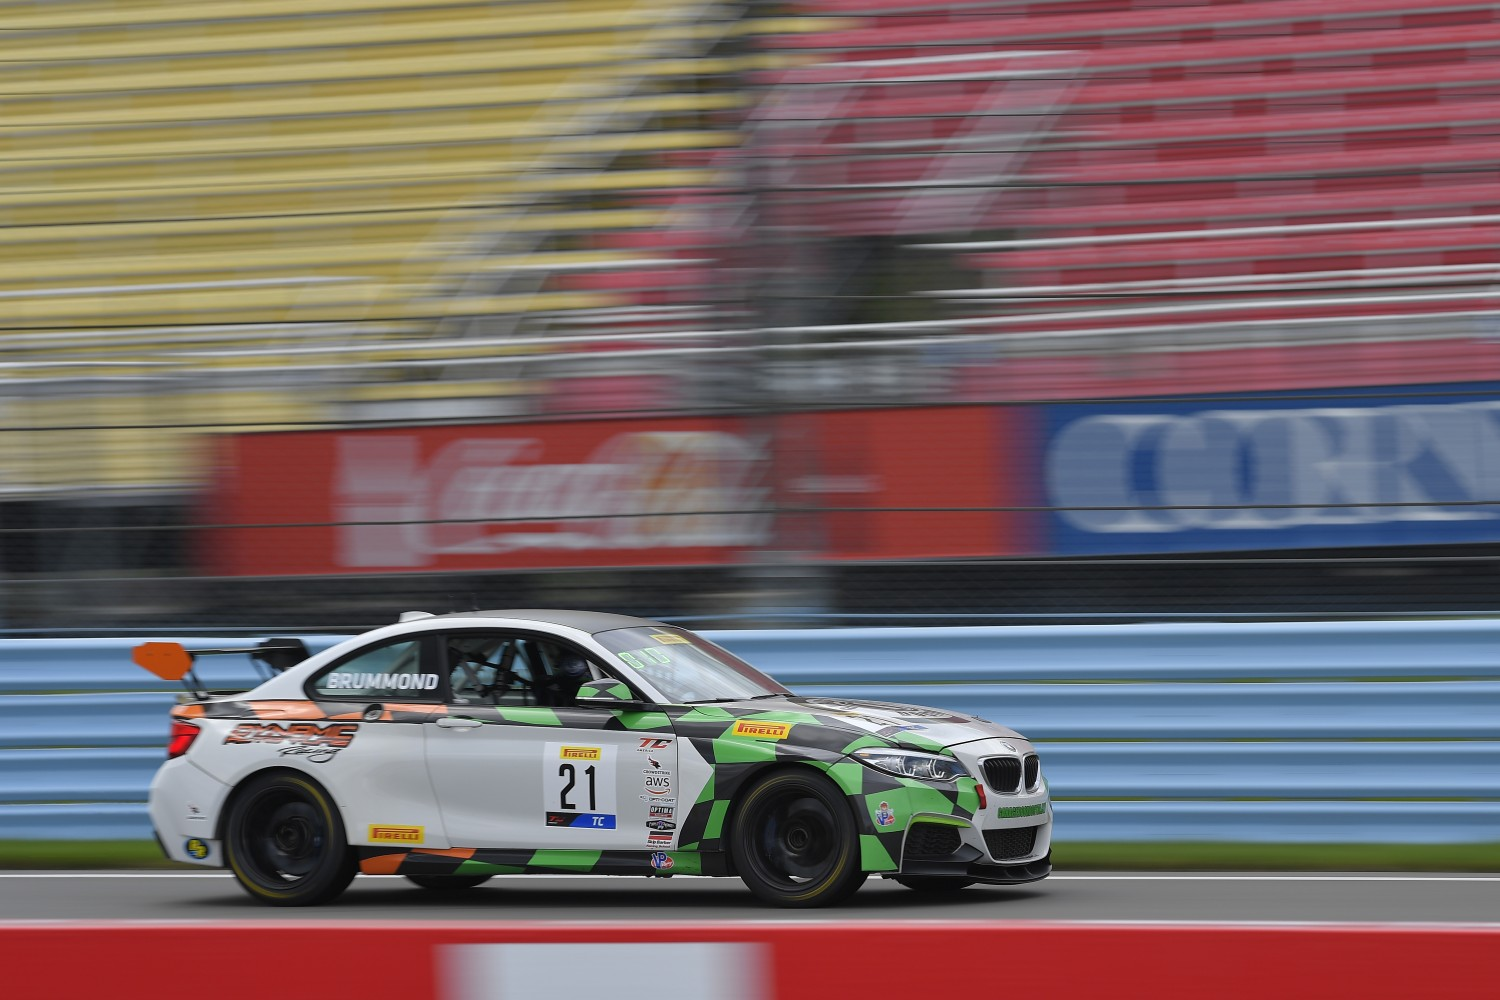 #21 BMW M240iR Cup of Mark Brummond  with Auto Technic Racing  Watkins Glen World Challenge America , Watkins Glen NY   | Gavin Baker/SRO